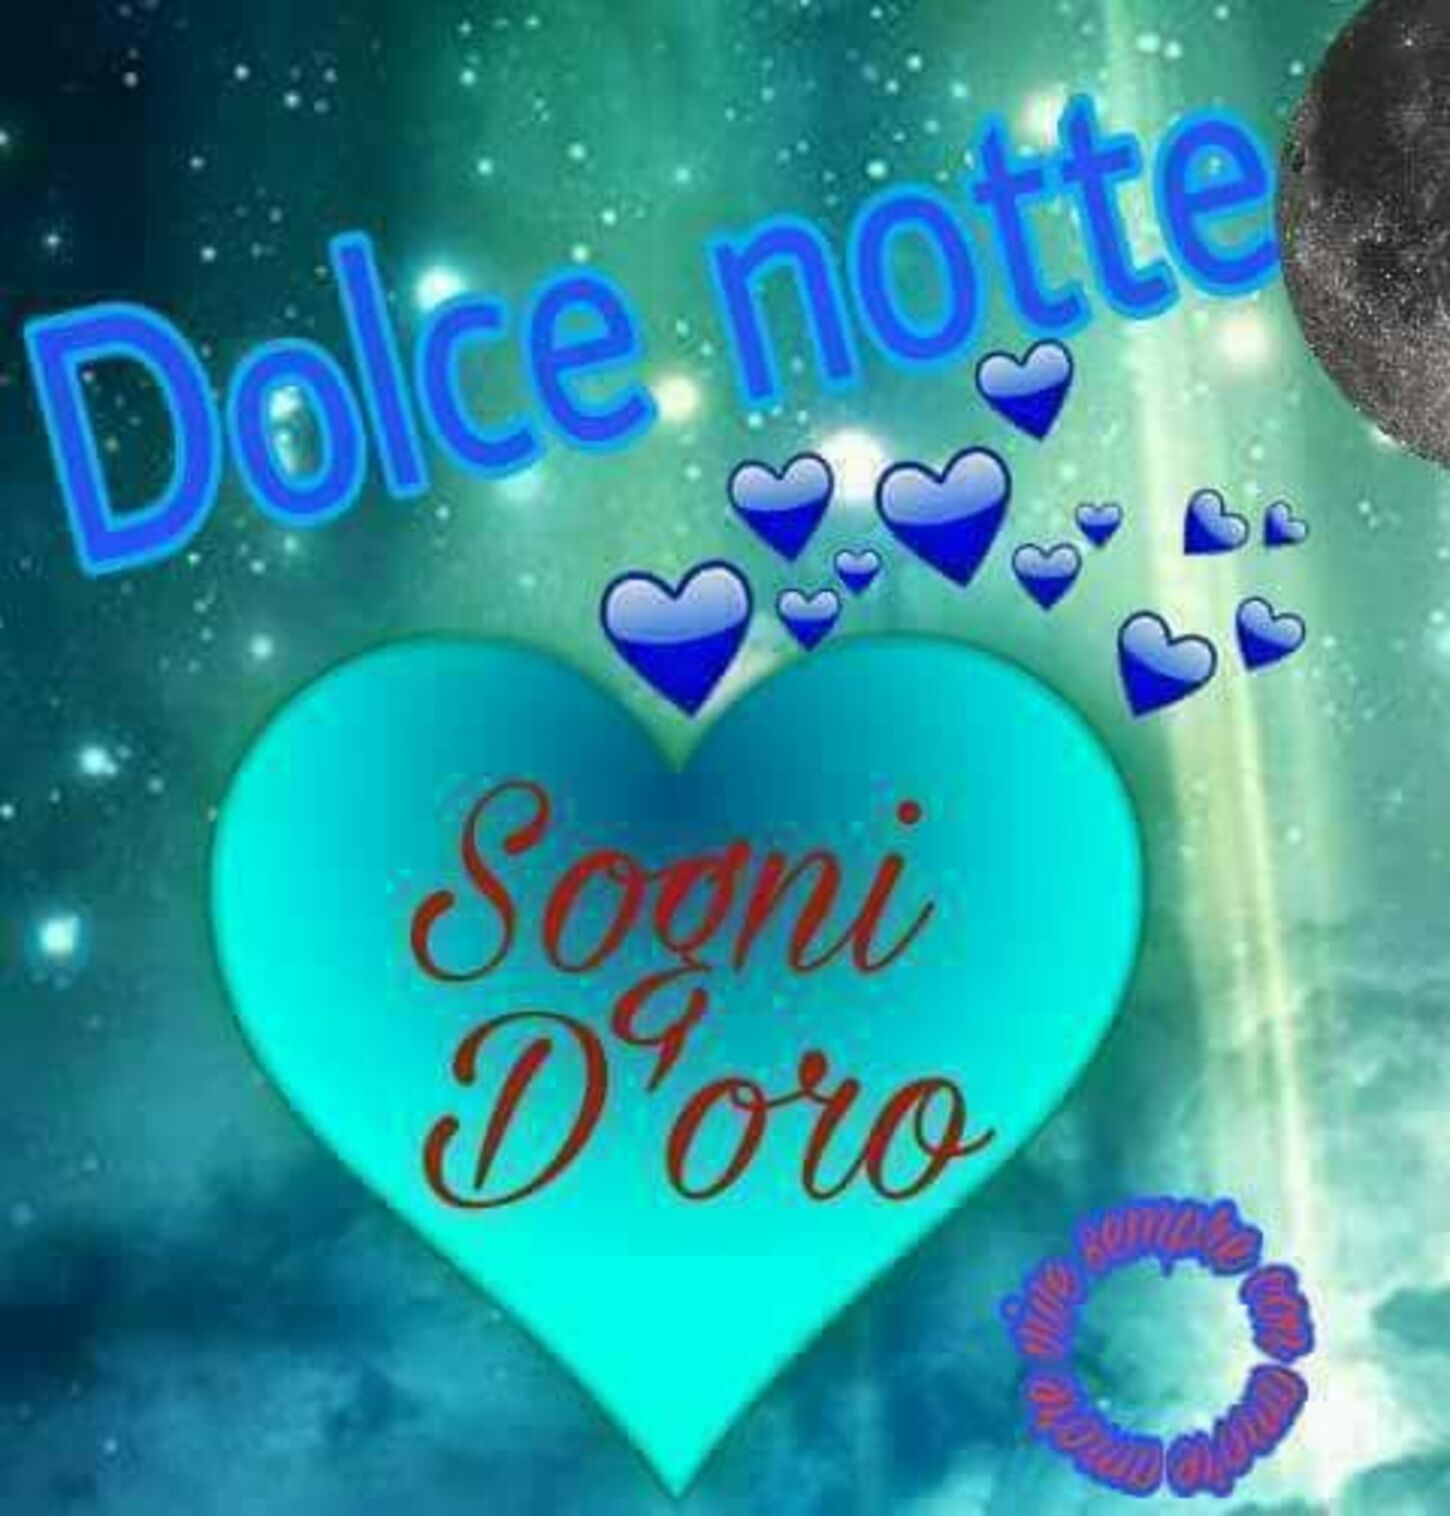 Dolce Notte, Sogni d'Oro